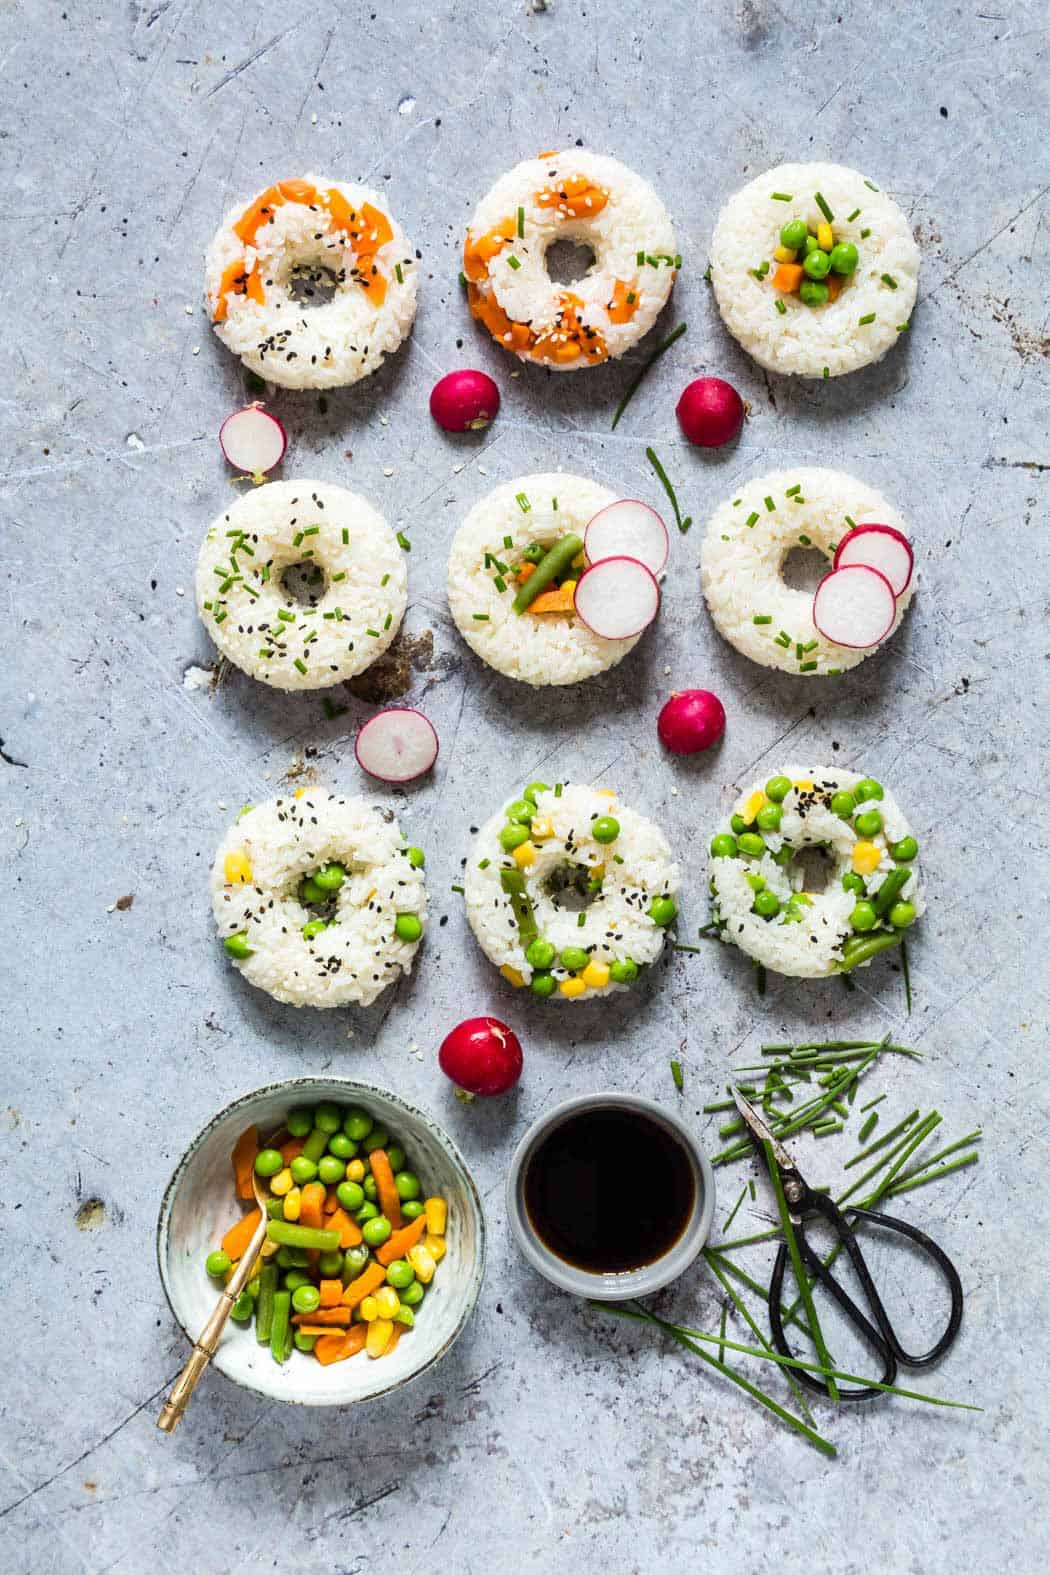 Vegetable sushi donuts + 15 Farmers market recipes to make in May! Delicious, vegetarian, (mostly) healthy spring/summer recipes made with fresh, seasonal produce from your local farmers market or CSA bin. Eat local! // Rhubarbarians